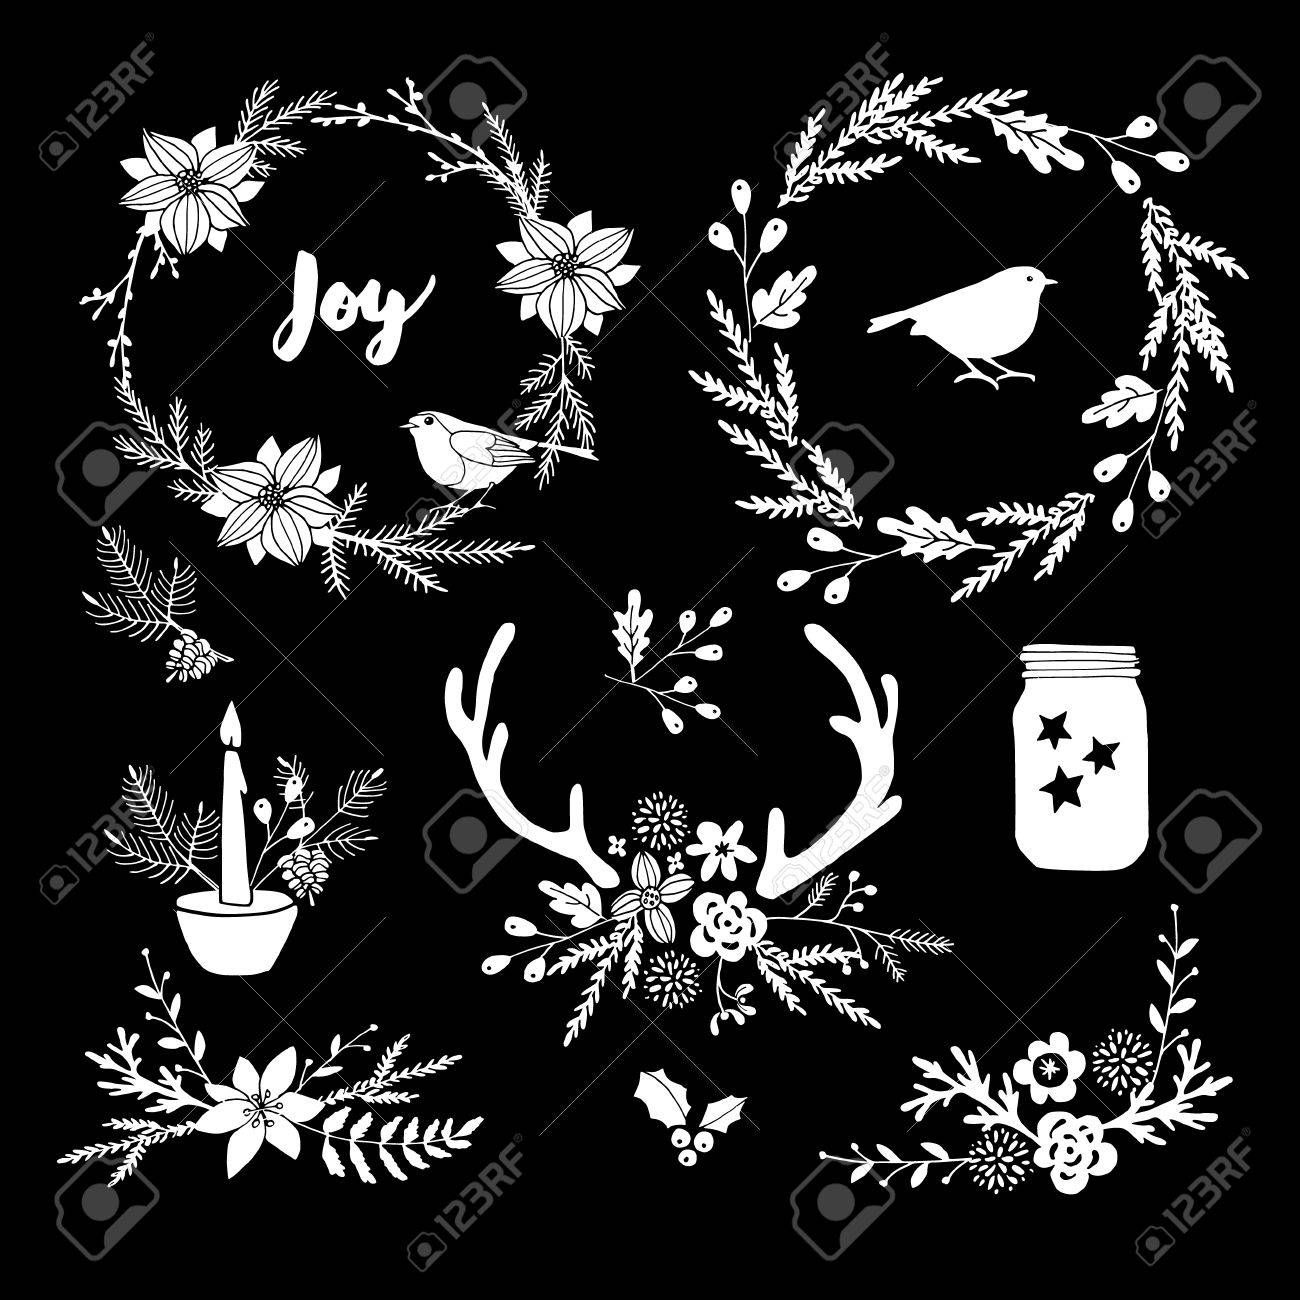 Set of white chalk flowers, leaves, wreath and branches on blackboard. Isolated Christmas floral elements and decorations. Hand drawn vector illustrations. - 66323263